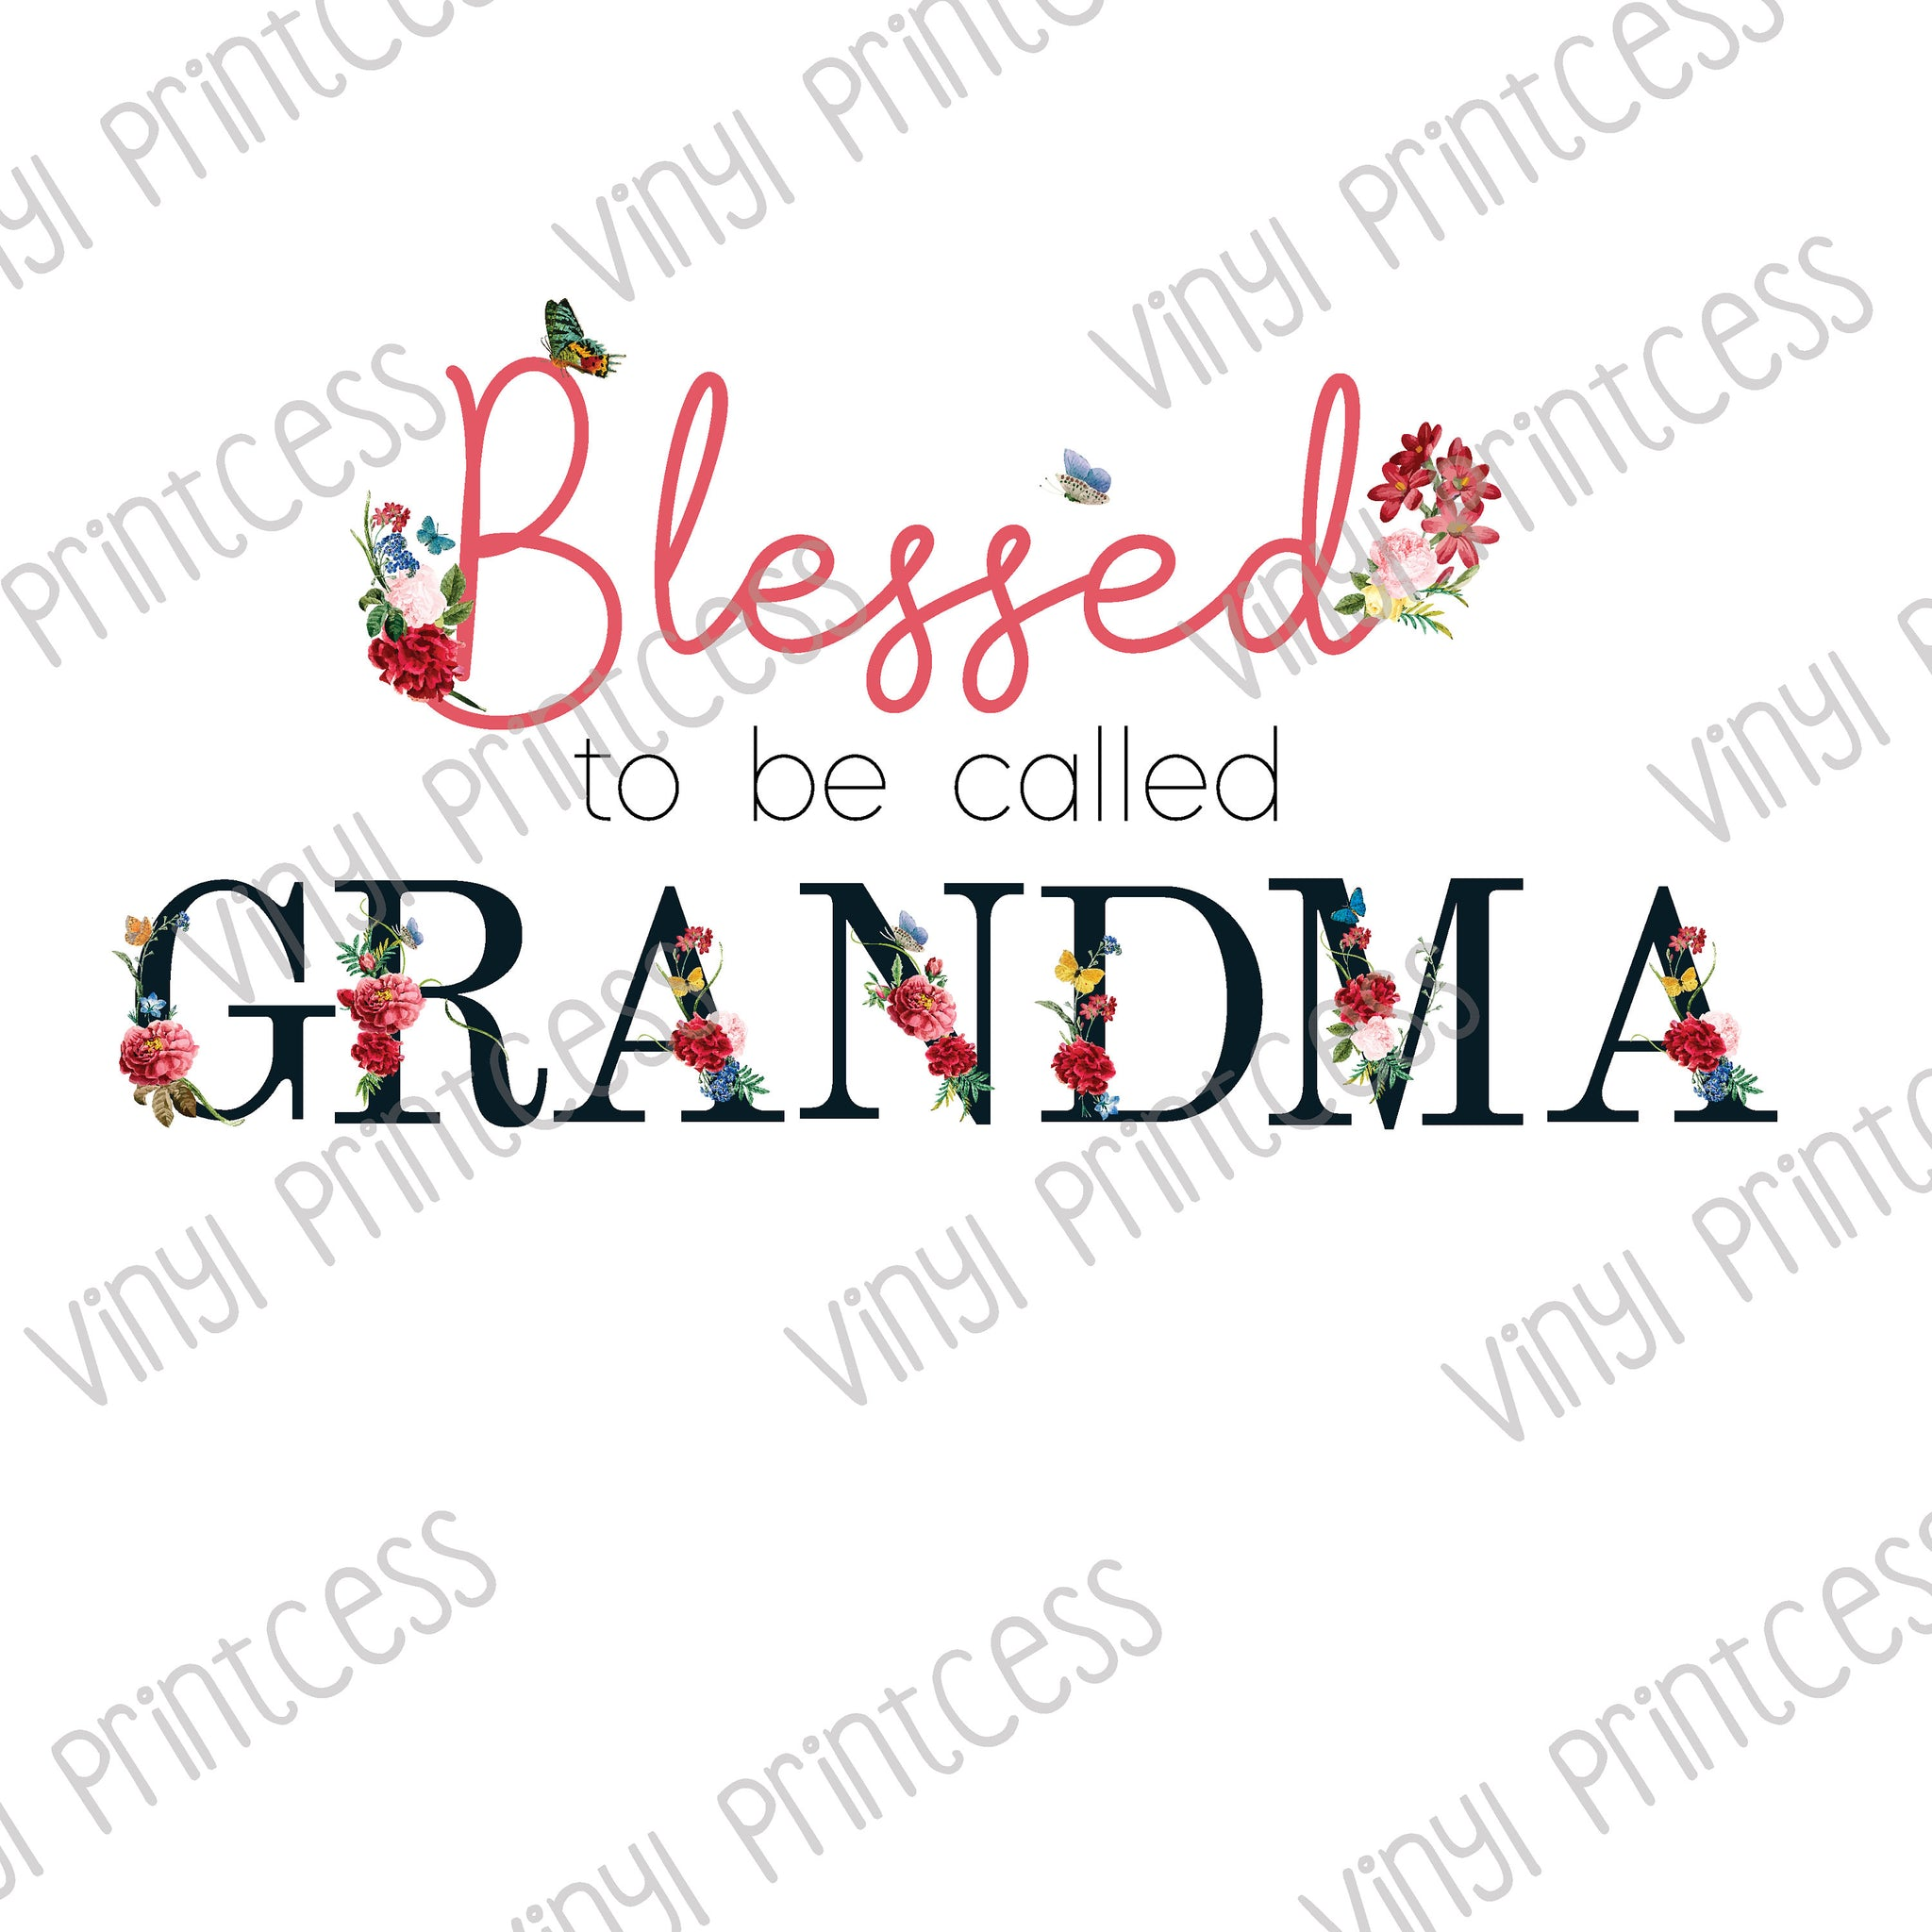 Blessed To Be Called Grandma PNG Digital Download - Sublimation File Download - Blessed Grandma Printable Digital Download